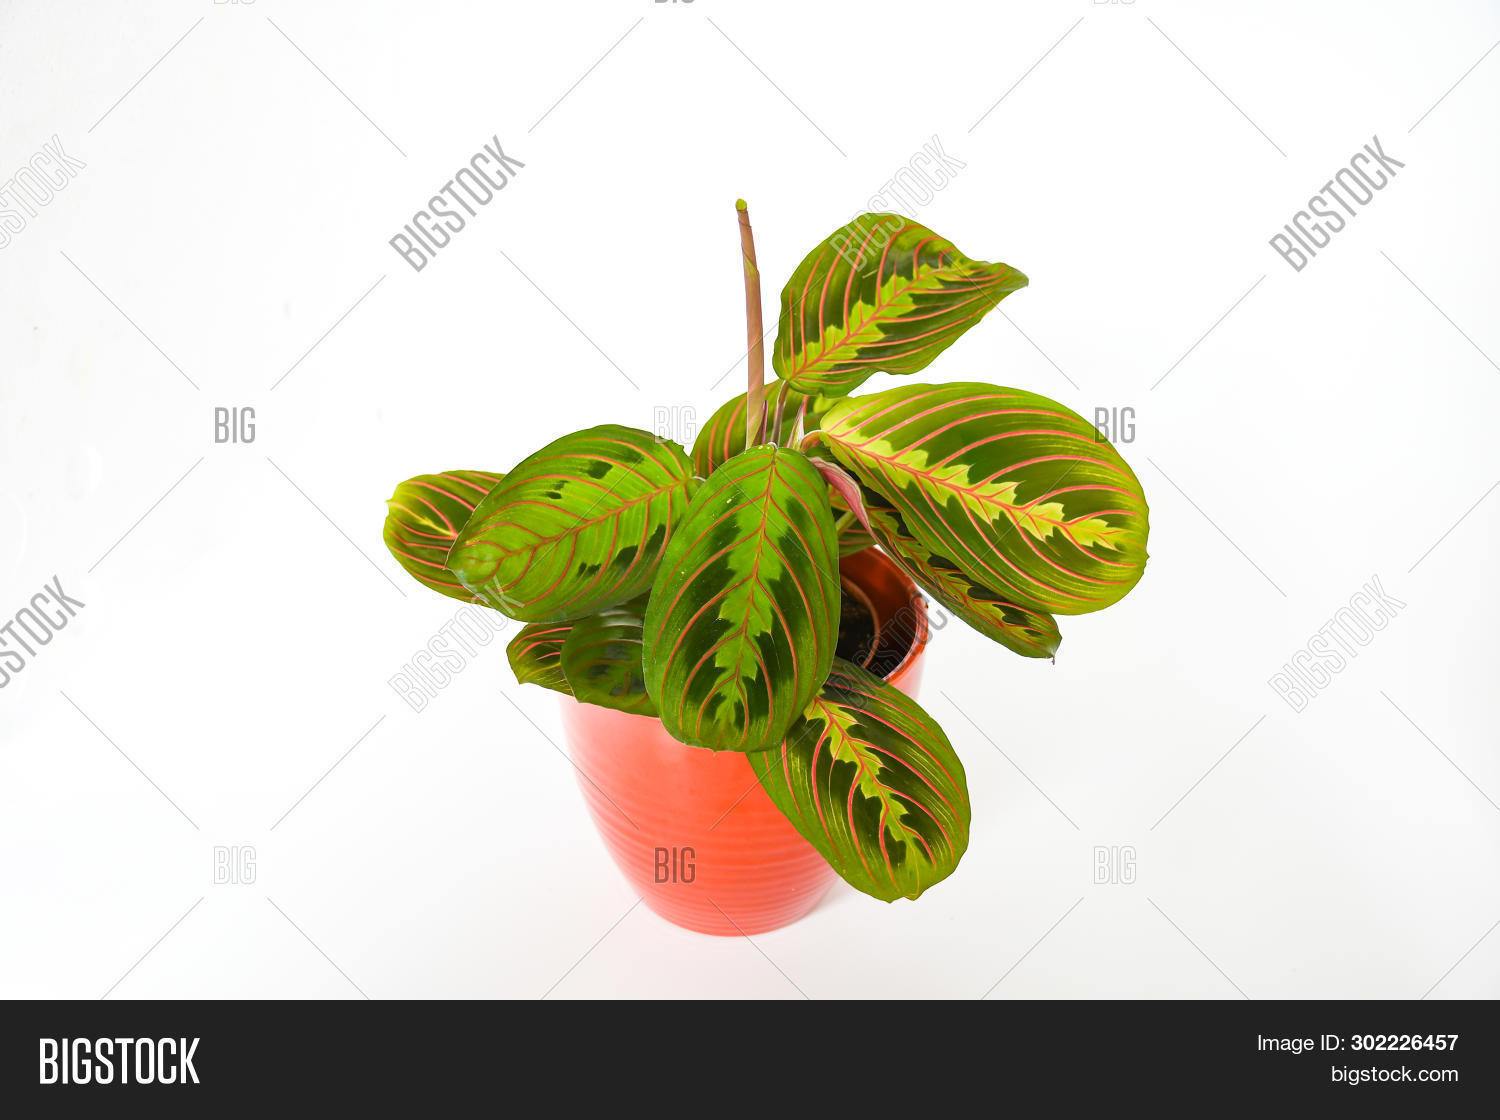 Beautiful Freshness Image Photo Free Trial Bigstock